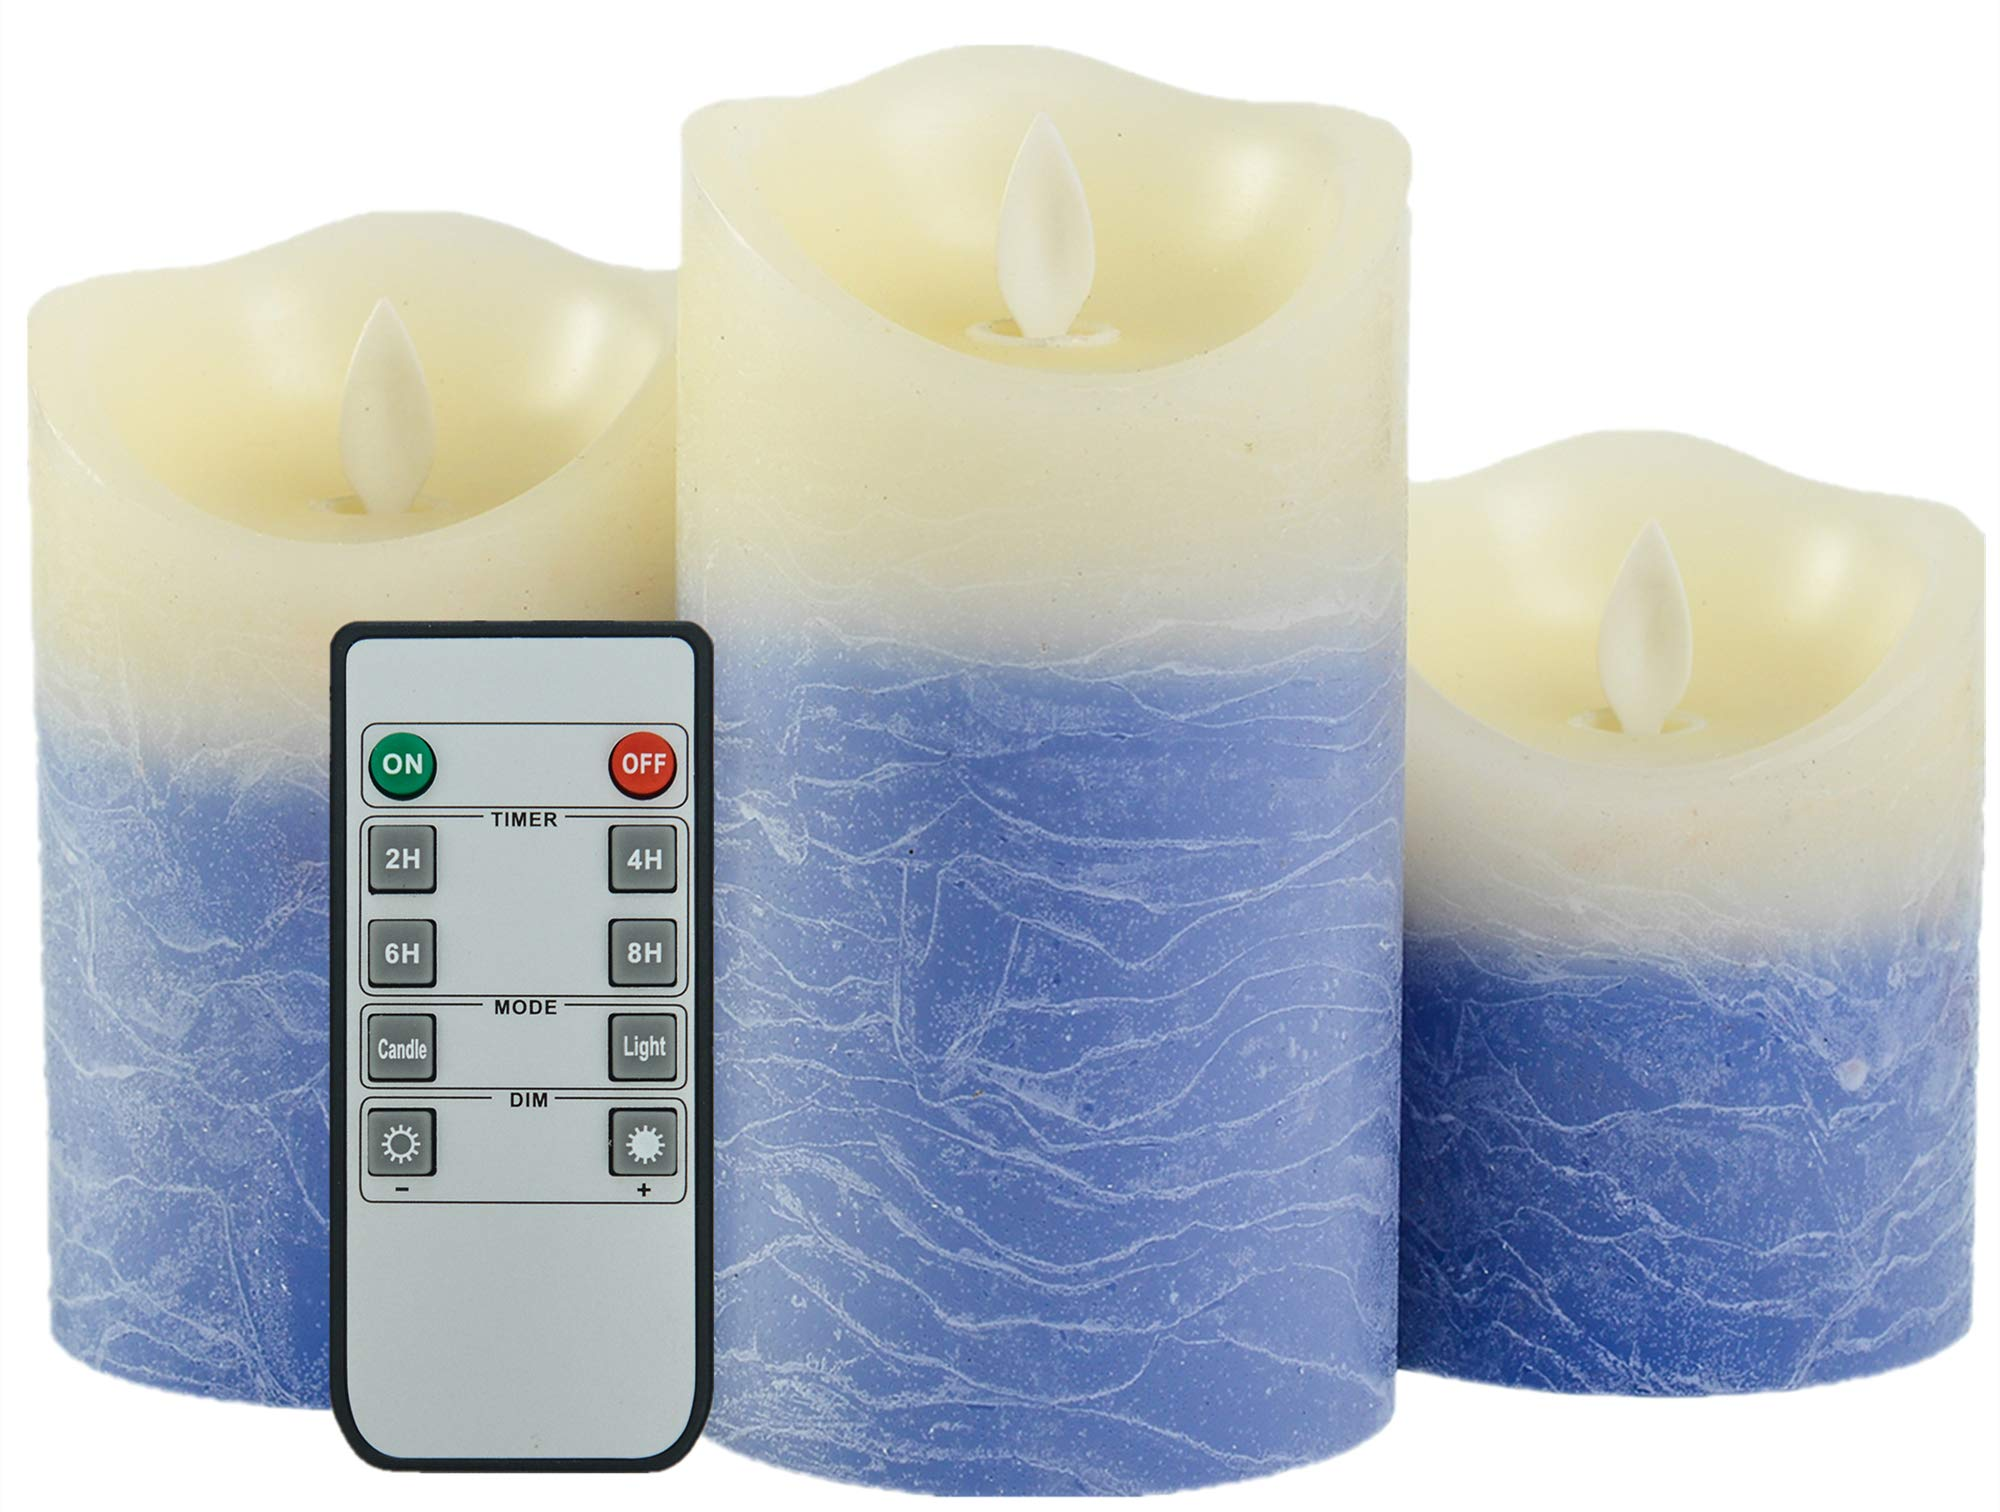 Iovin Water Wave Grain Flameless Candles Set of 3.15'' (Size:4'' 5'' 6'') Battery Operated LED Pillar Candles with Moving Flame Wick Timer,Wave Top(Blue&Ivory)